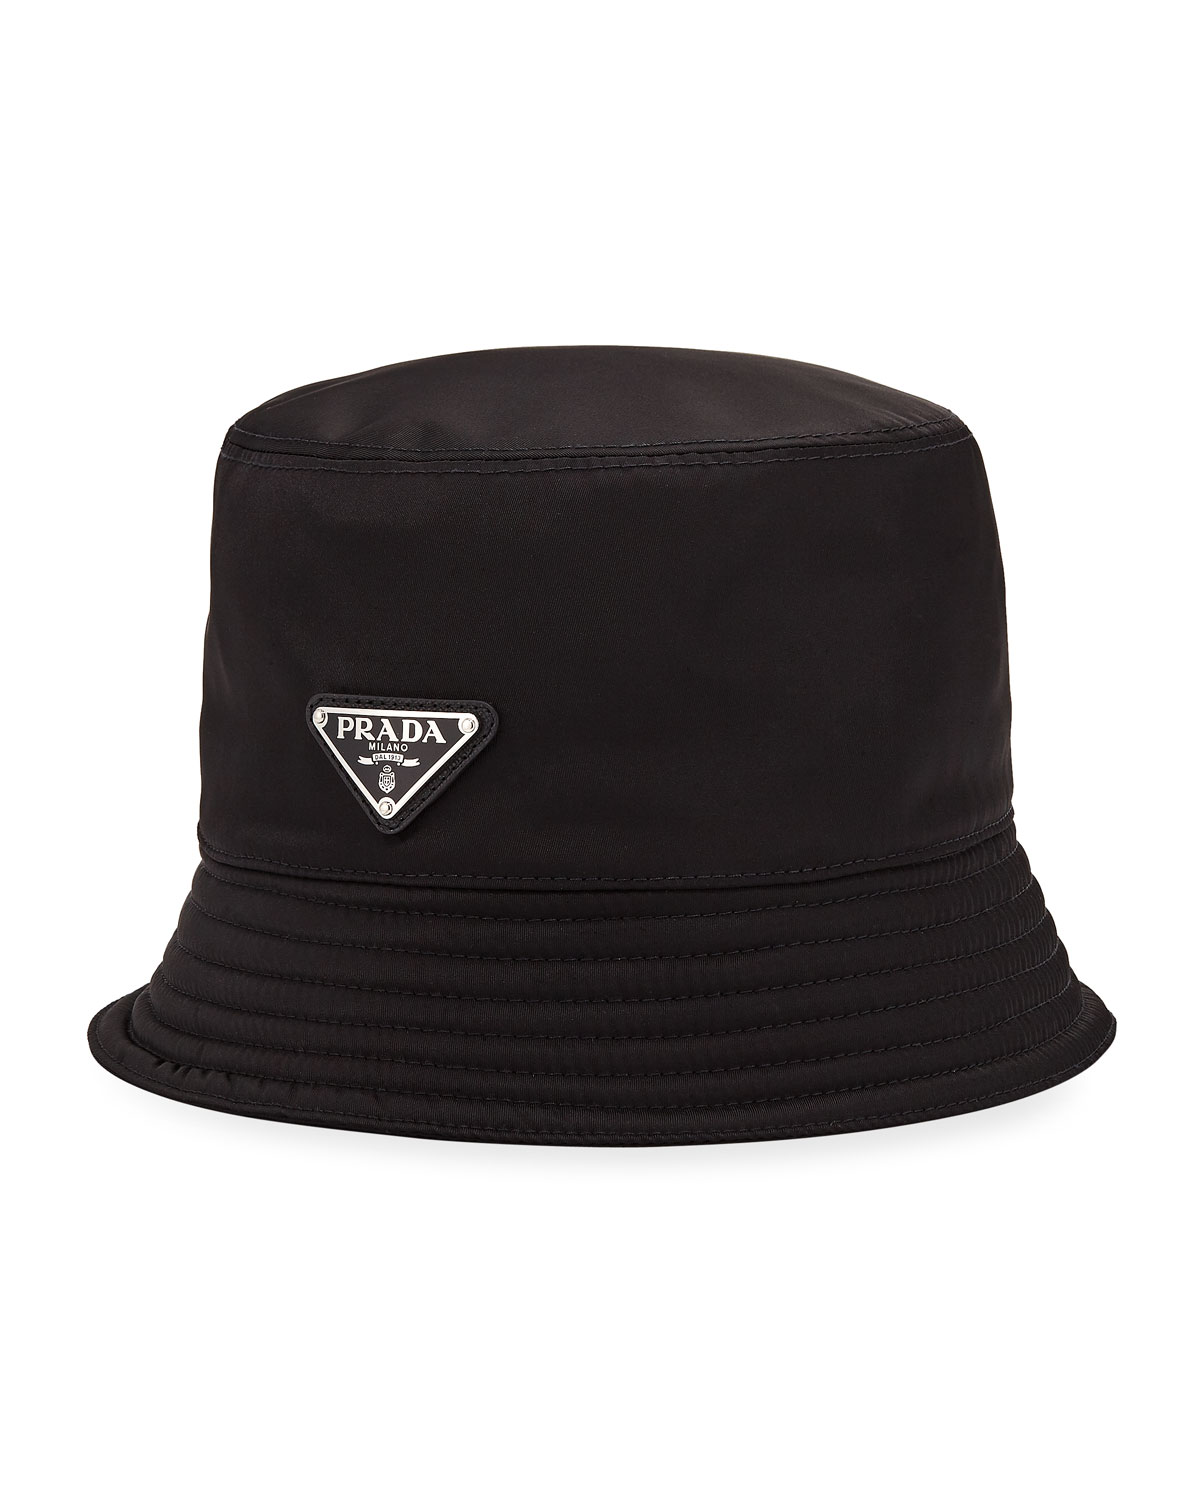 Prada Men s Nylon Bucket Hat with Logo  09ff80efda9